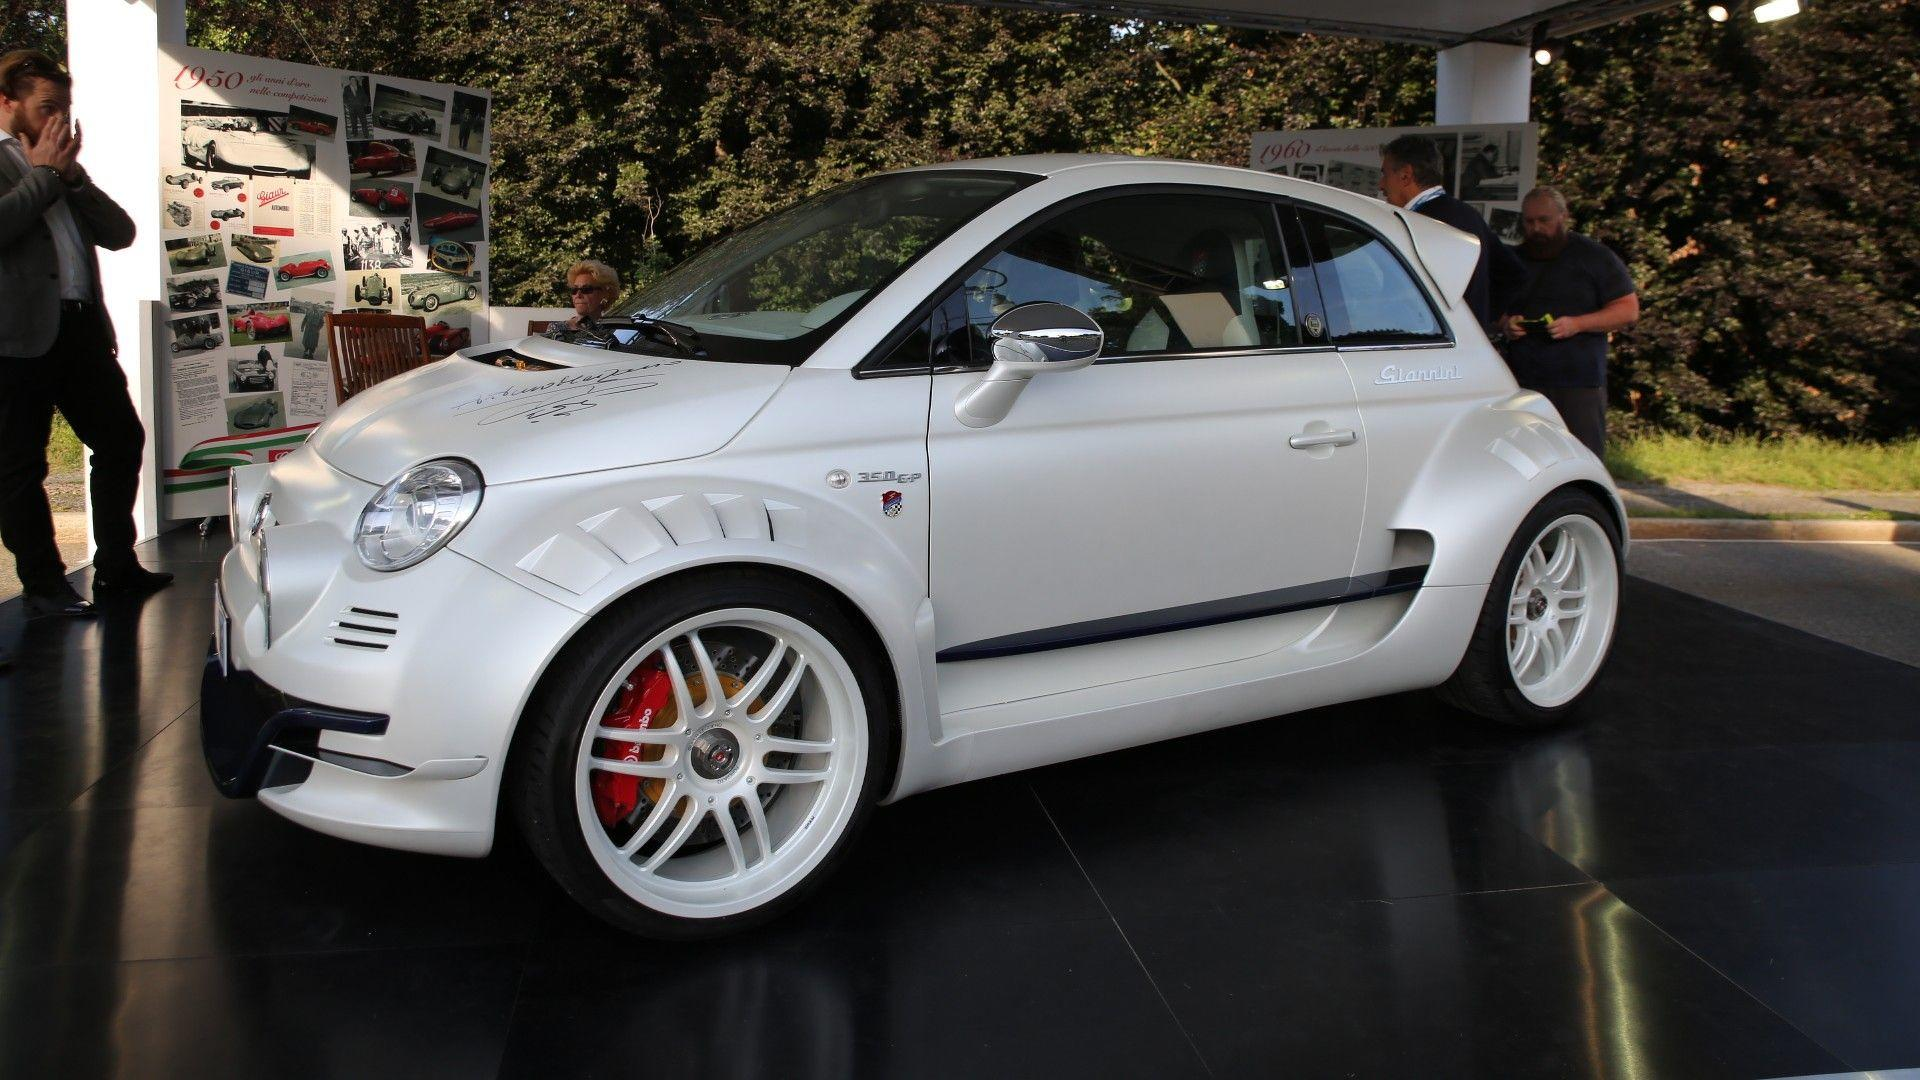 fiat 500 giannini is super city car with 350 hp from alfa romeo. Black Bedroom Furniture Sets. Home Design Ideas